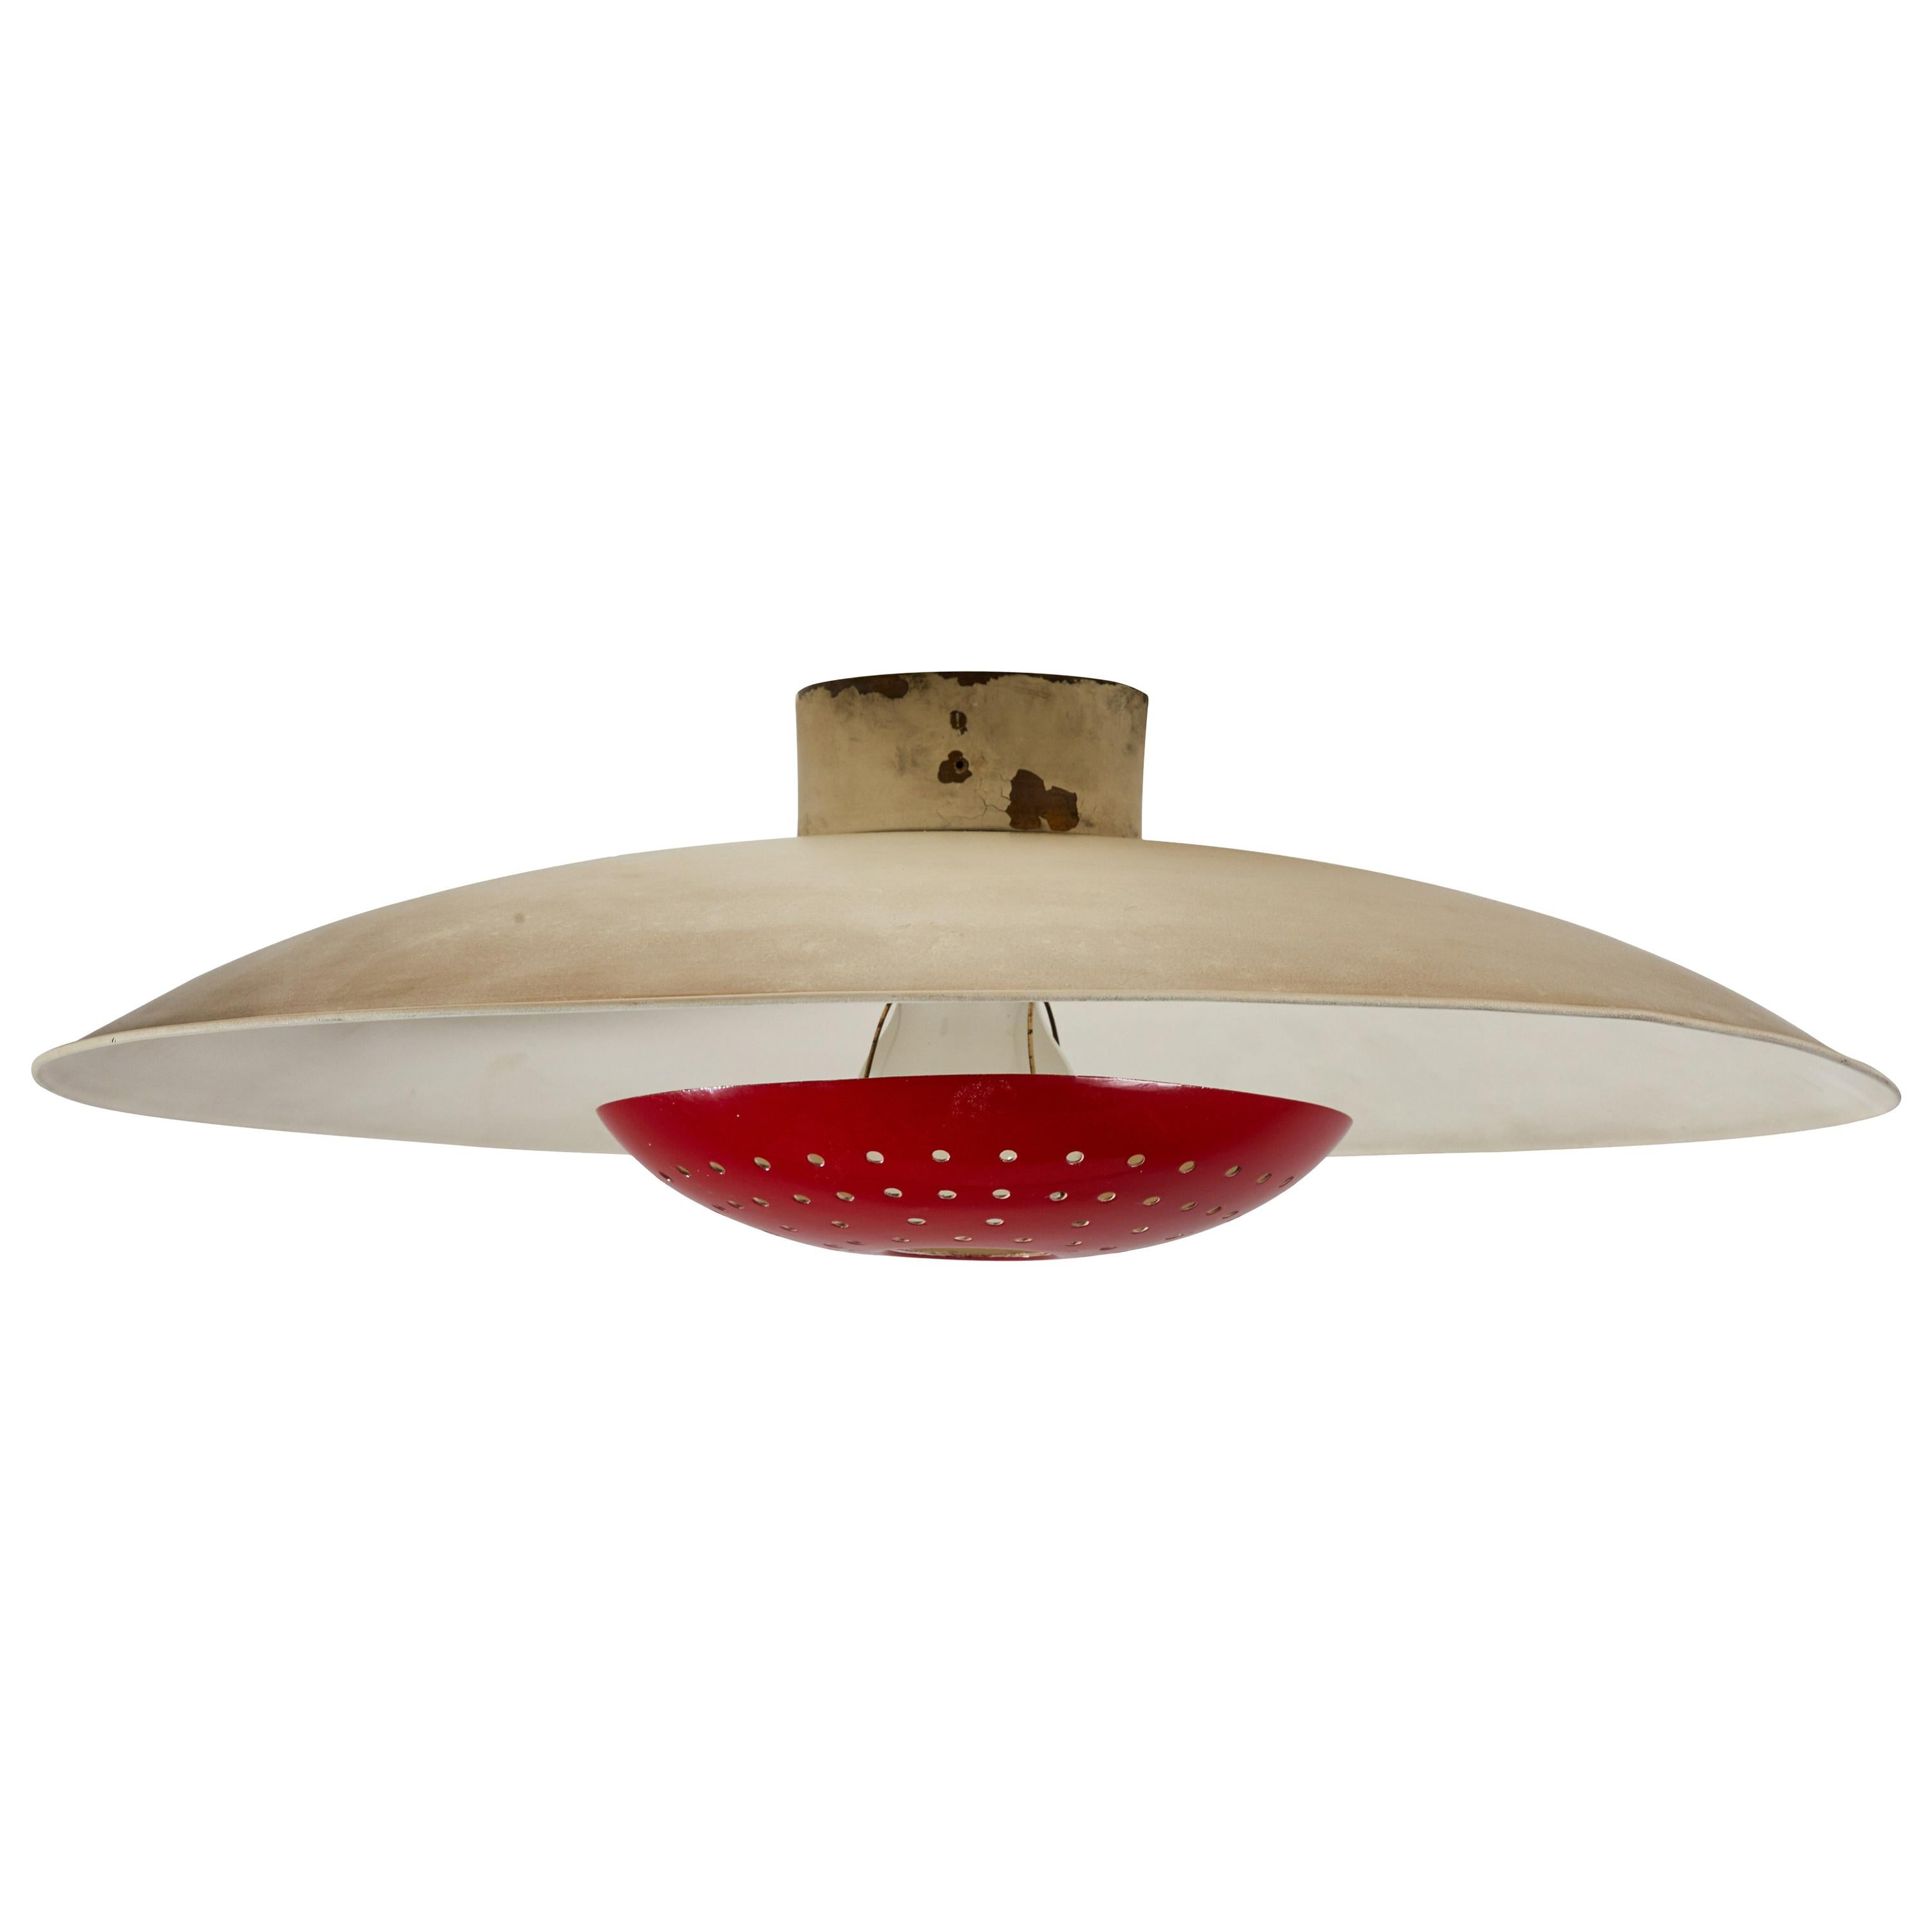 Model 155 Wall/Ceiling Light by Gino Sarfatti for Arteluce